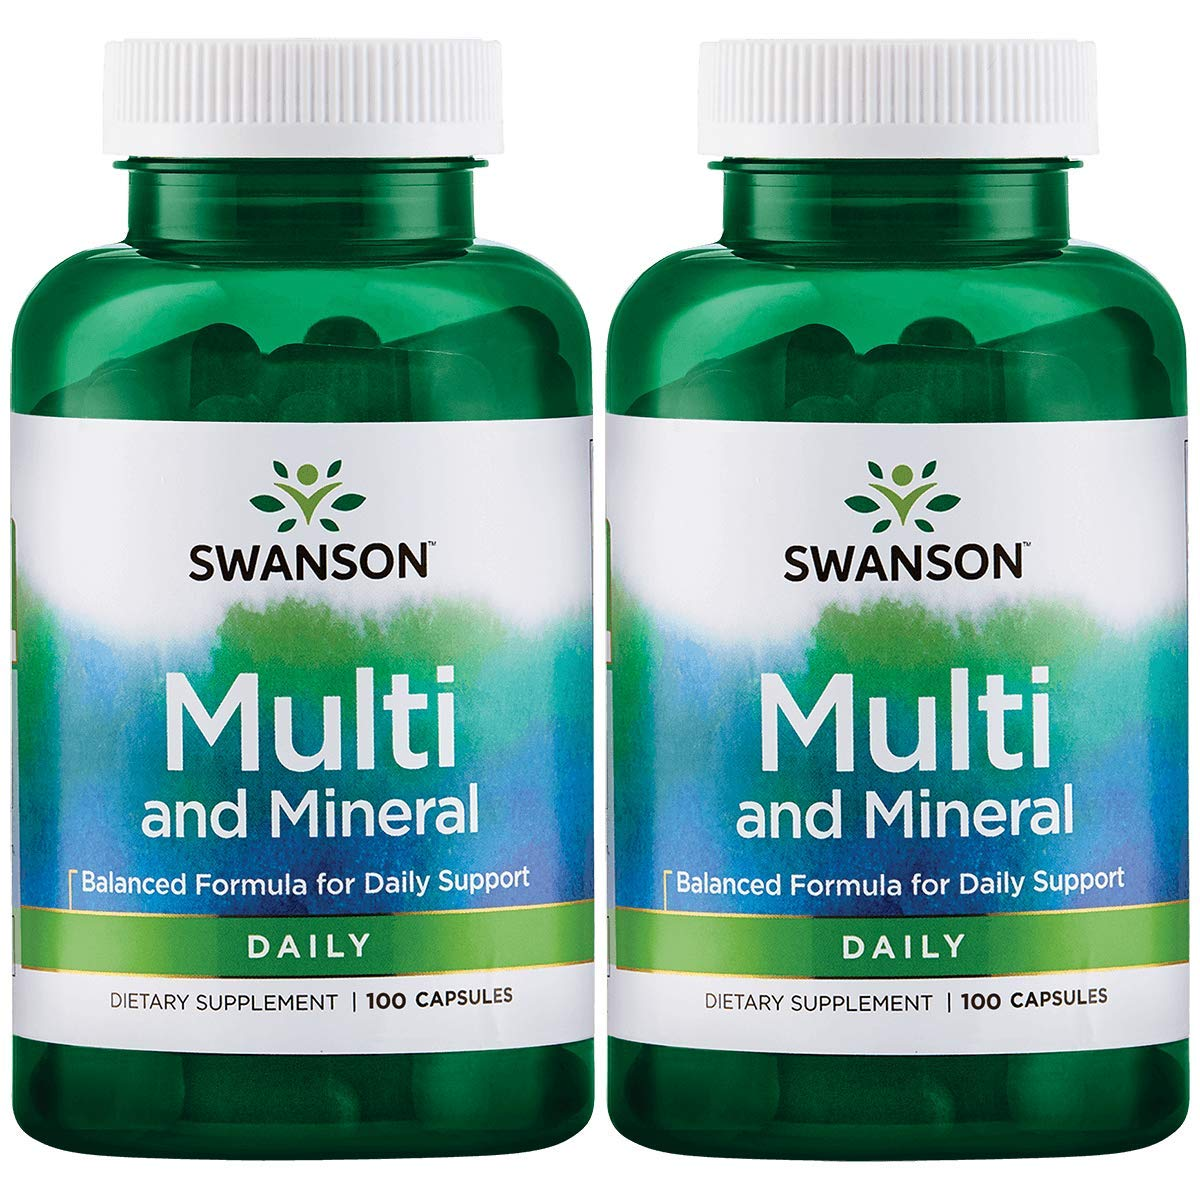 Swanson Multi and Mineral Daily Men's Women's Multivitamin Multimineral Health Supplement 100 Capsules (Caps) (2 Pack)